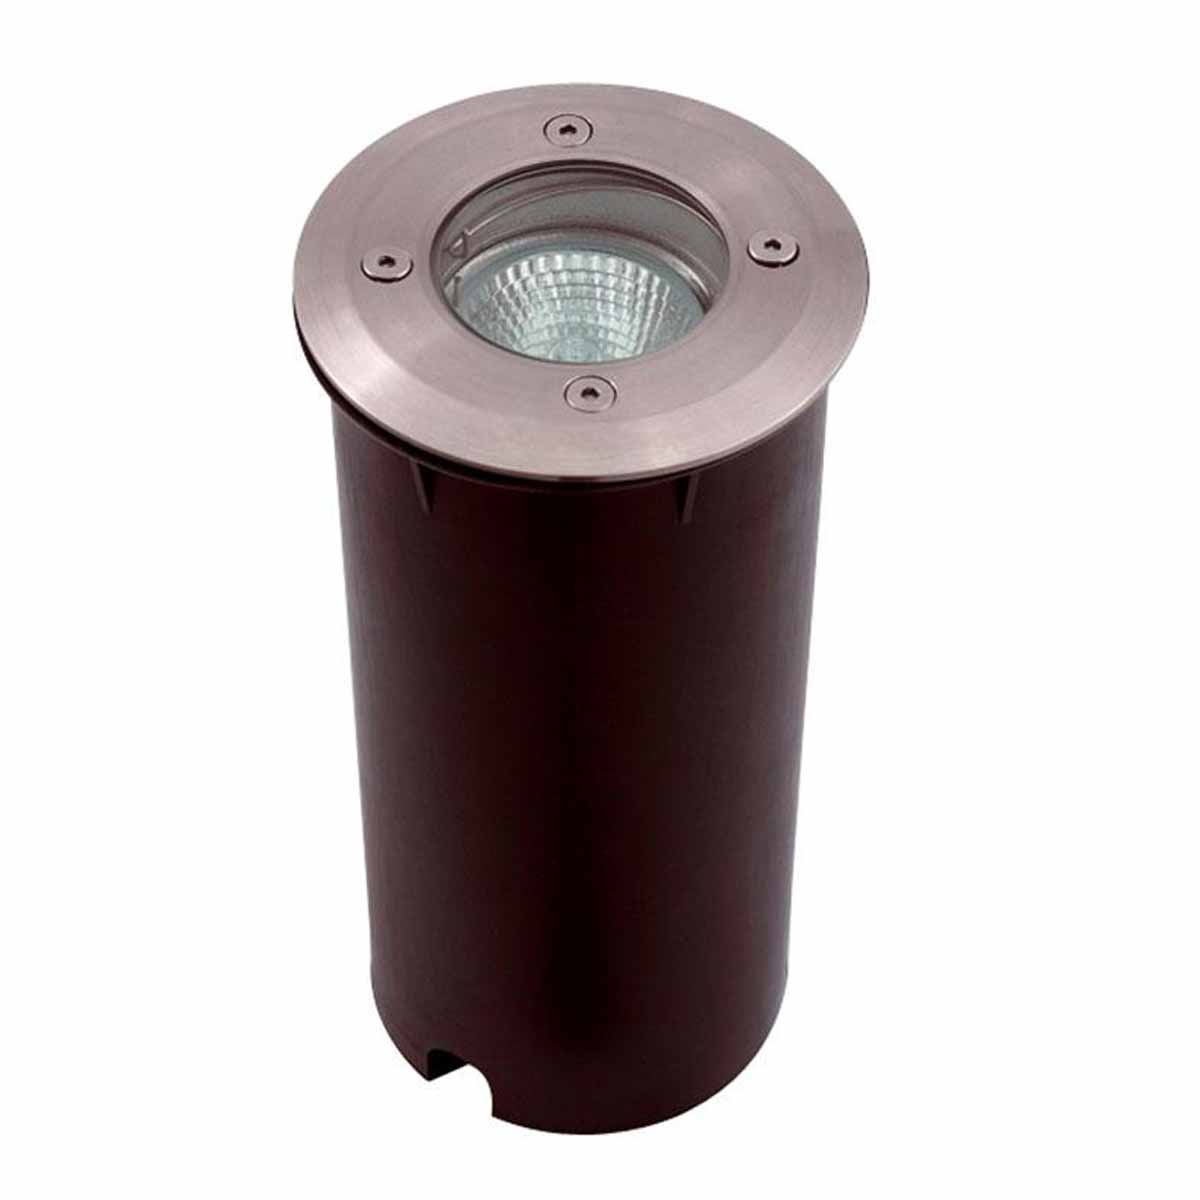 Ansell INGROUND UPLIGHT 50W STAINLESS STEEL